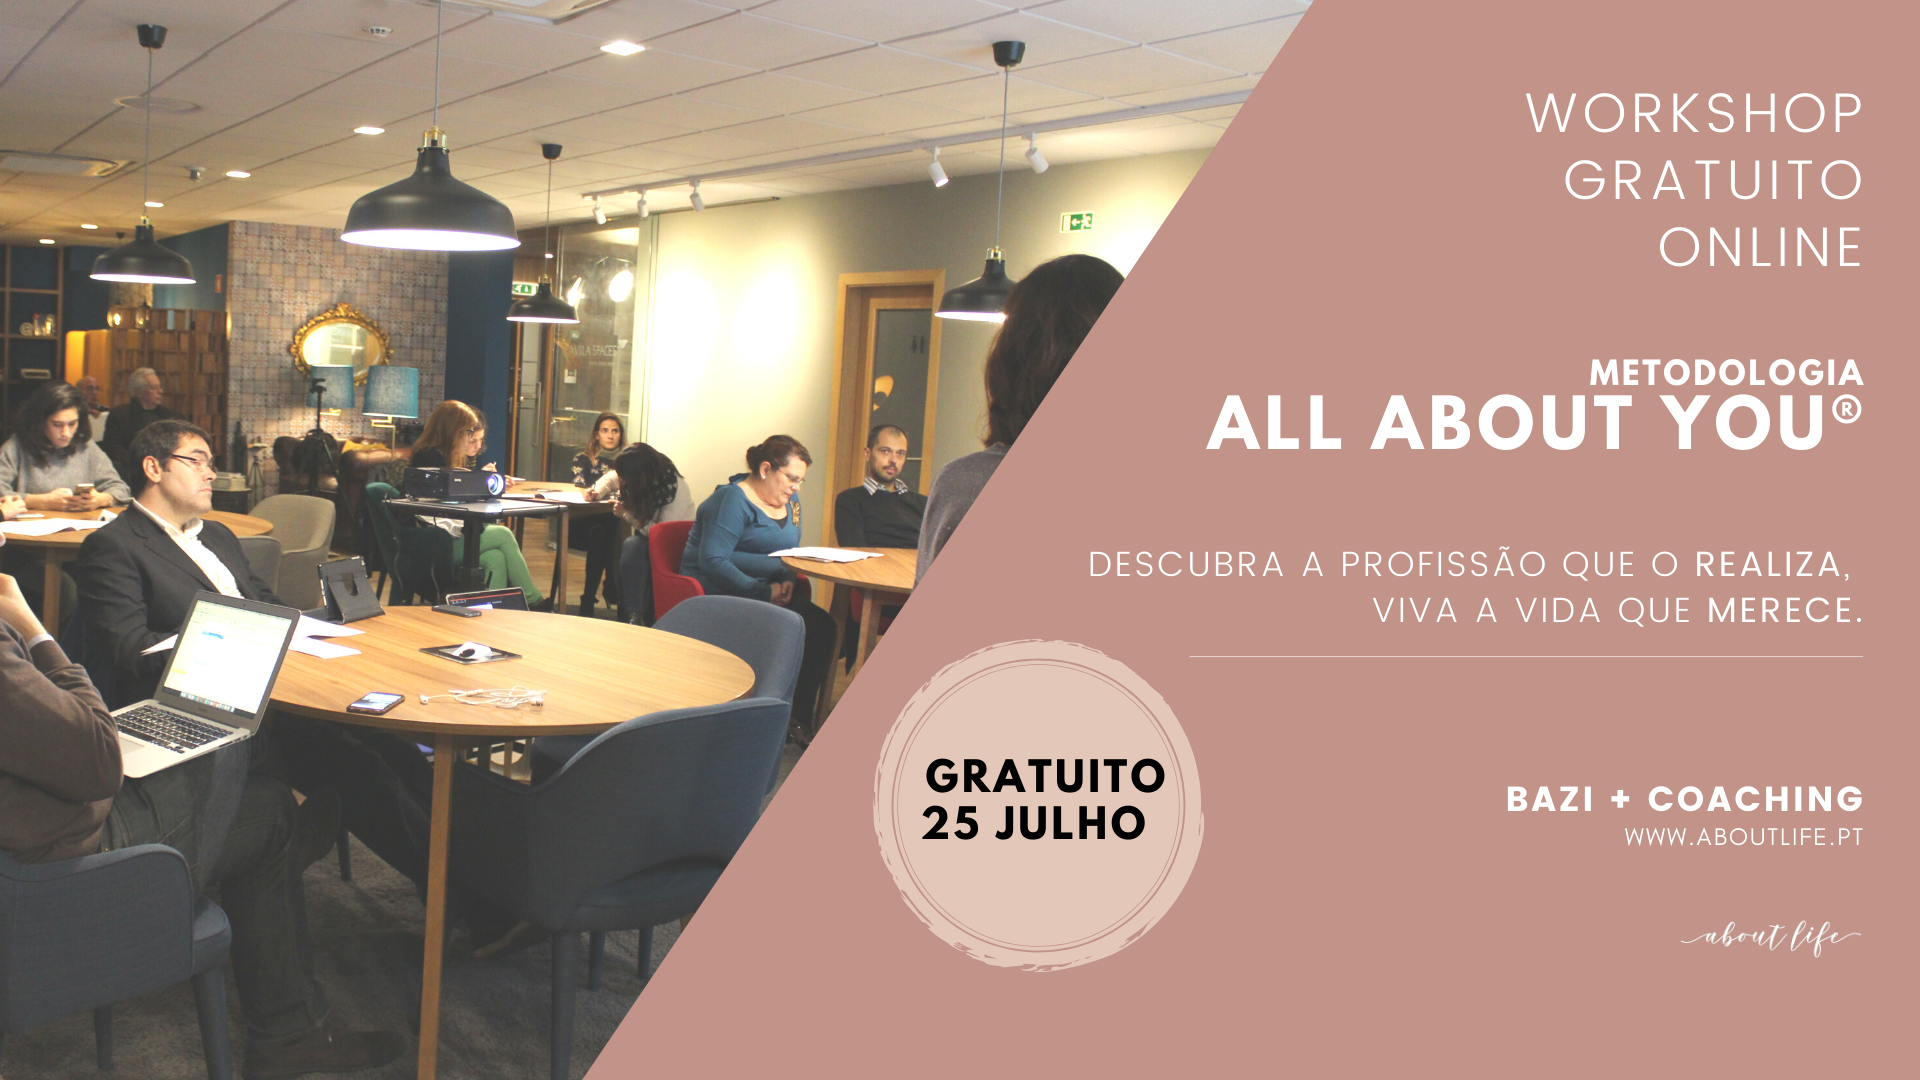 Workshop Online Gratuito